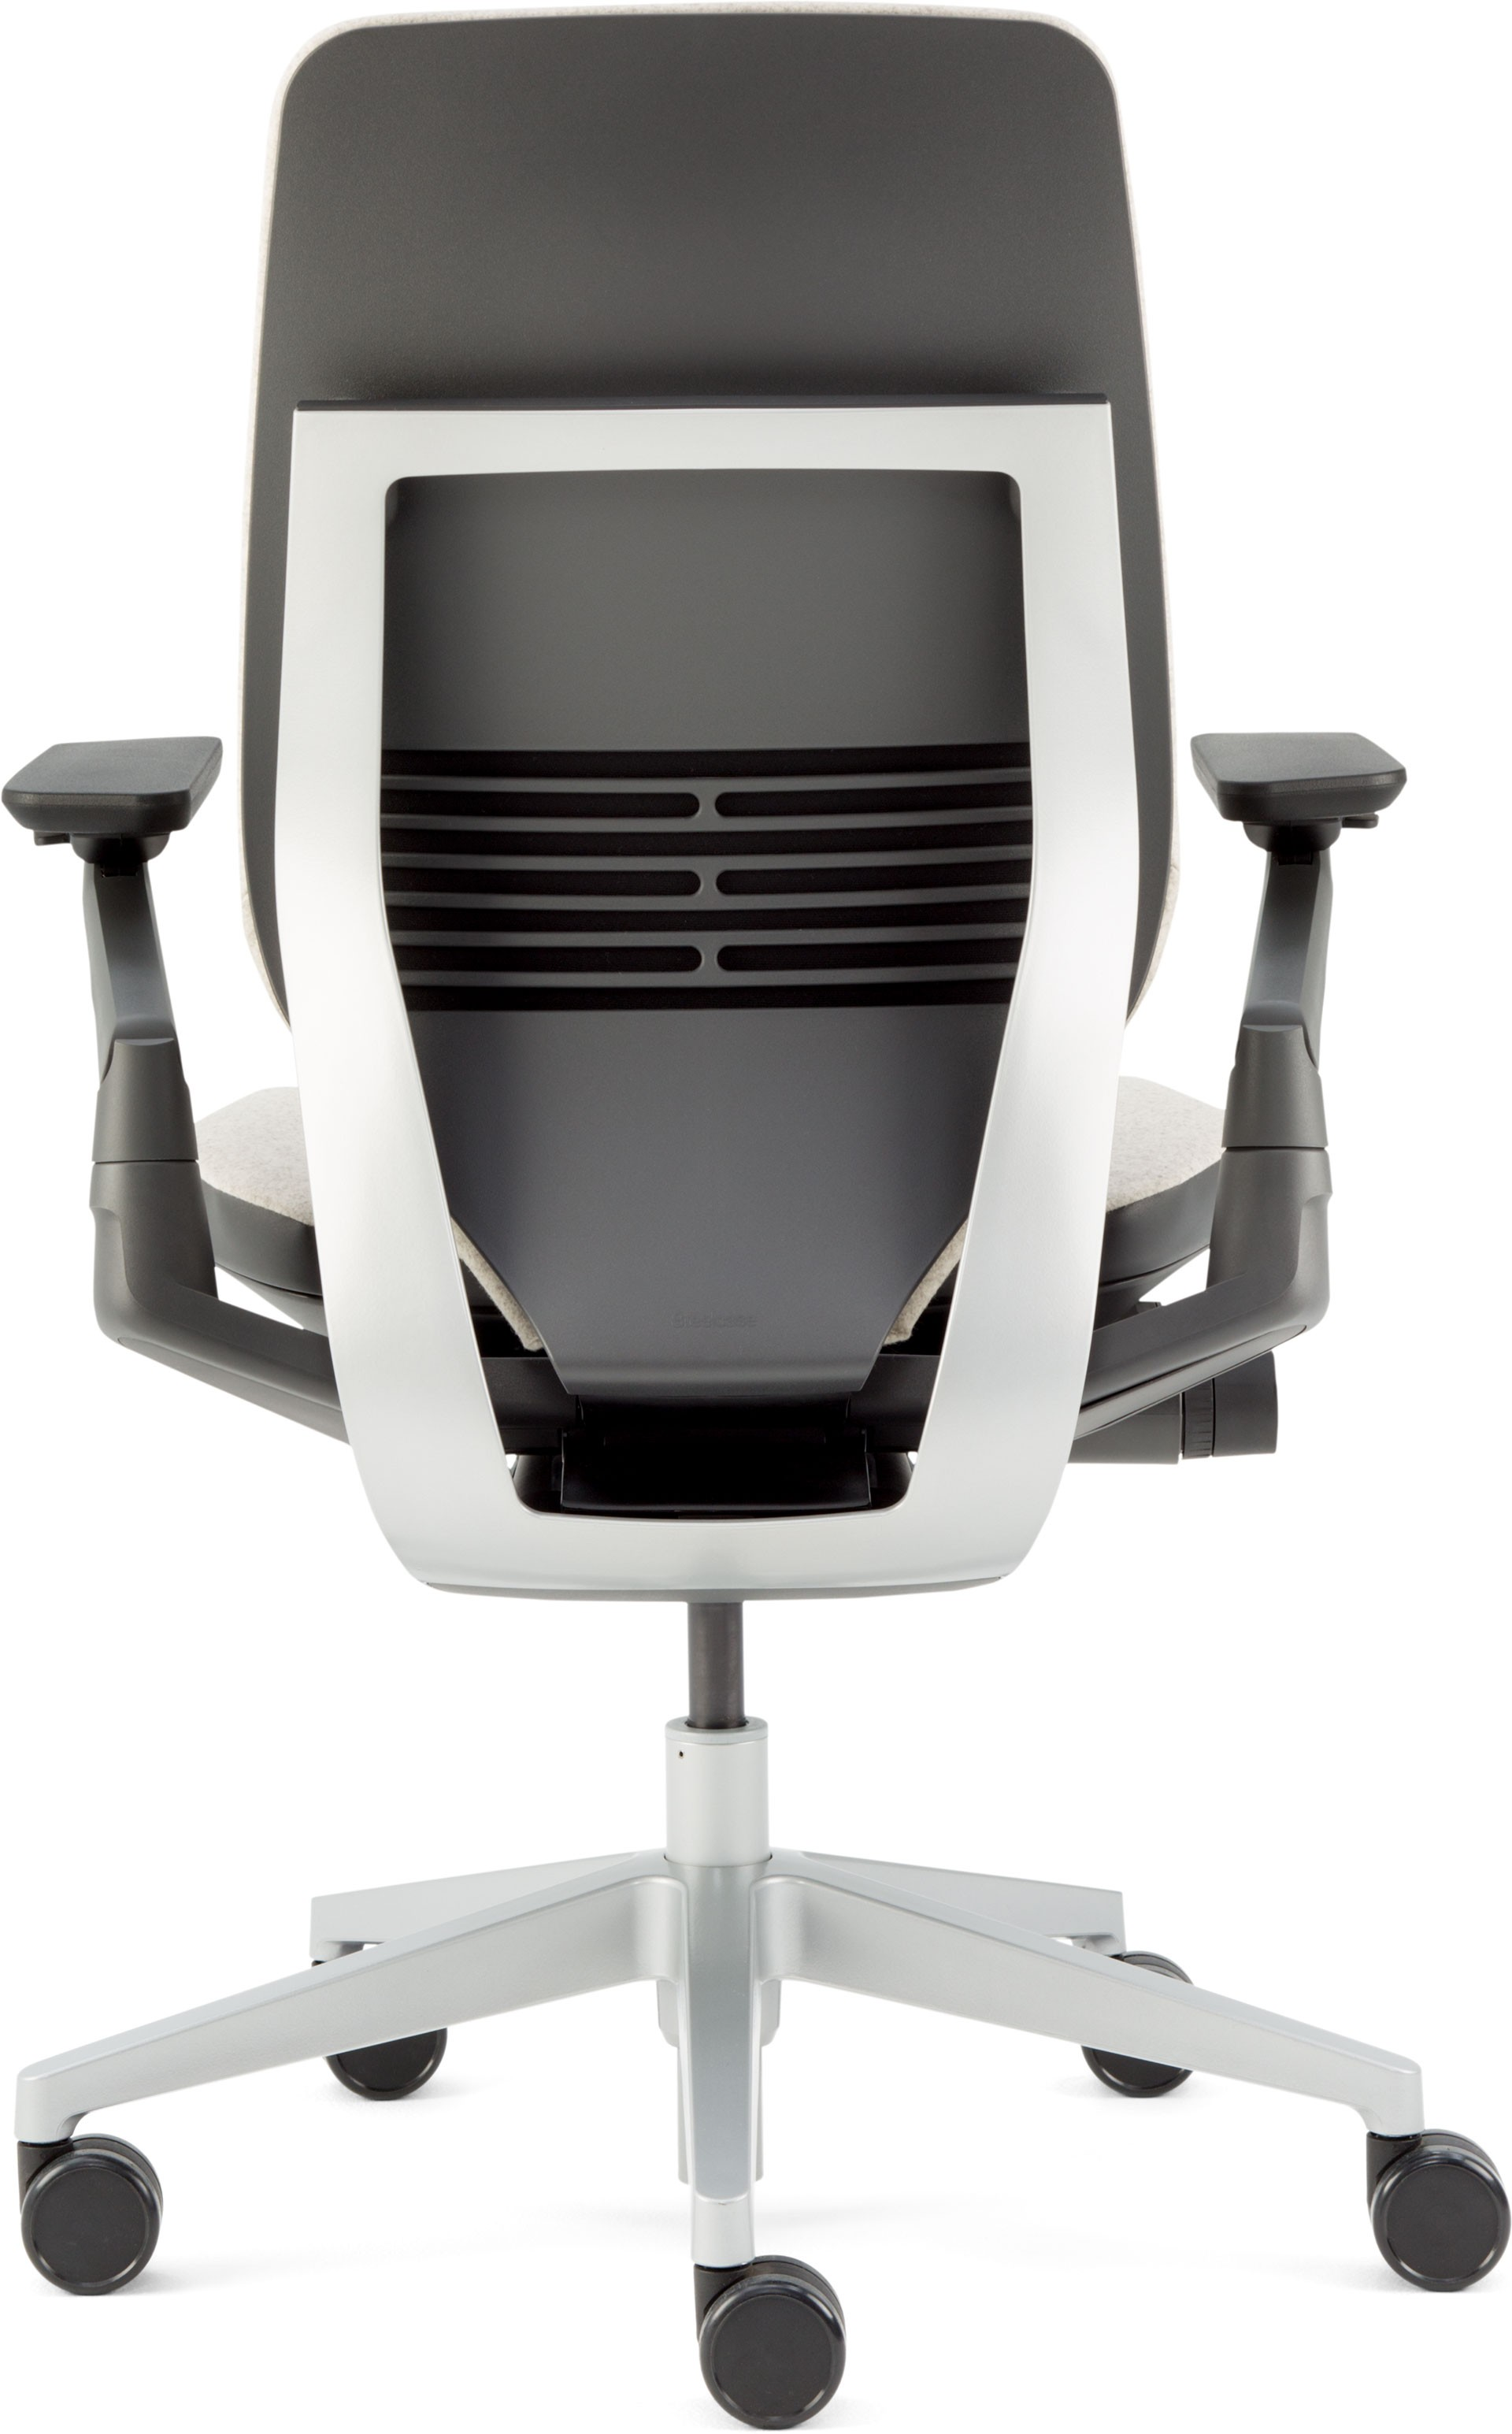 steelcase gesture chair review cardboard table and chairs office